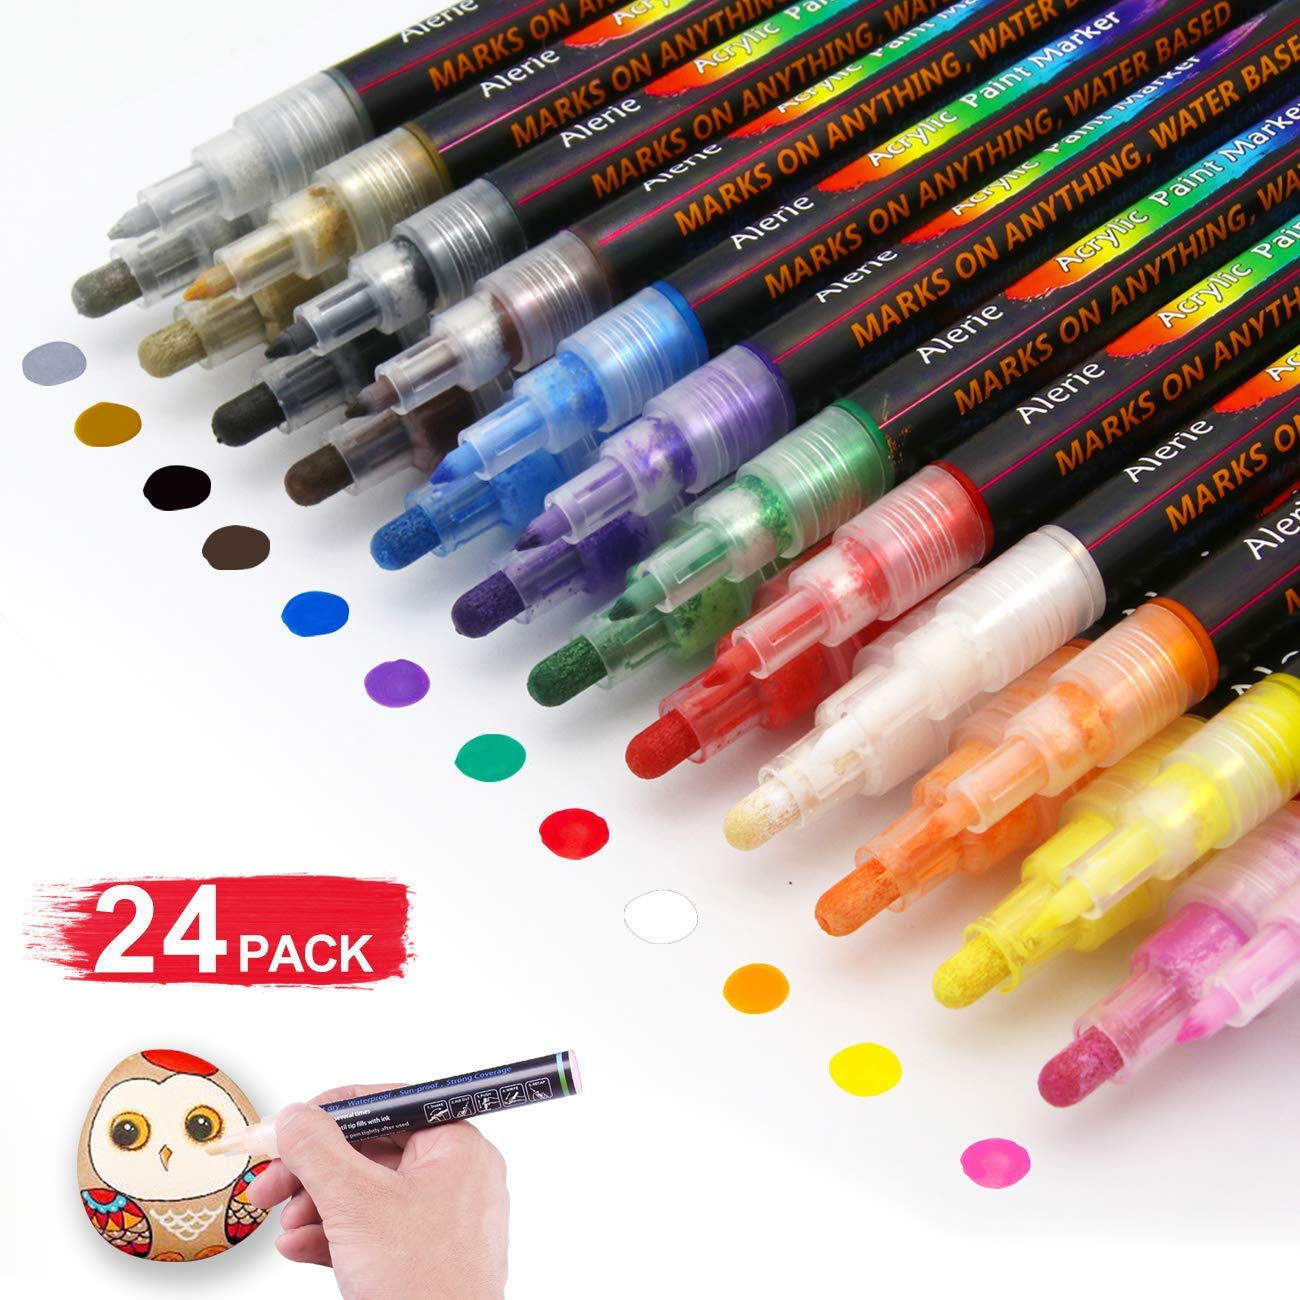 Acrylic Paint Pens - 24 Acrylic Paint Markers for Rock Painting, Stone, Metal, Ceramic, Porcelain, Glass, Wood, Fabric, Canvas.Set of 12 Colors Paint Markers with 3 Different Tip Precision by Alerie